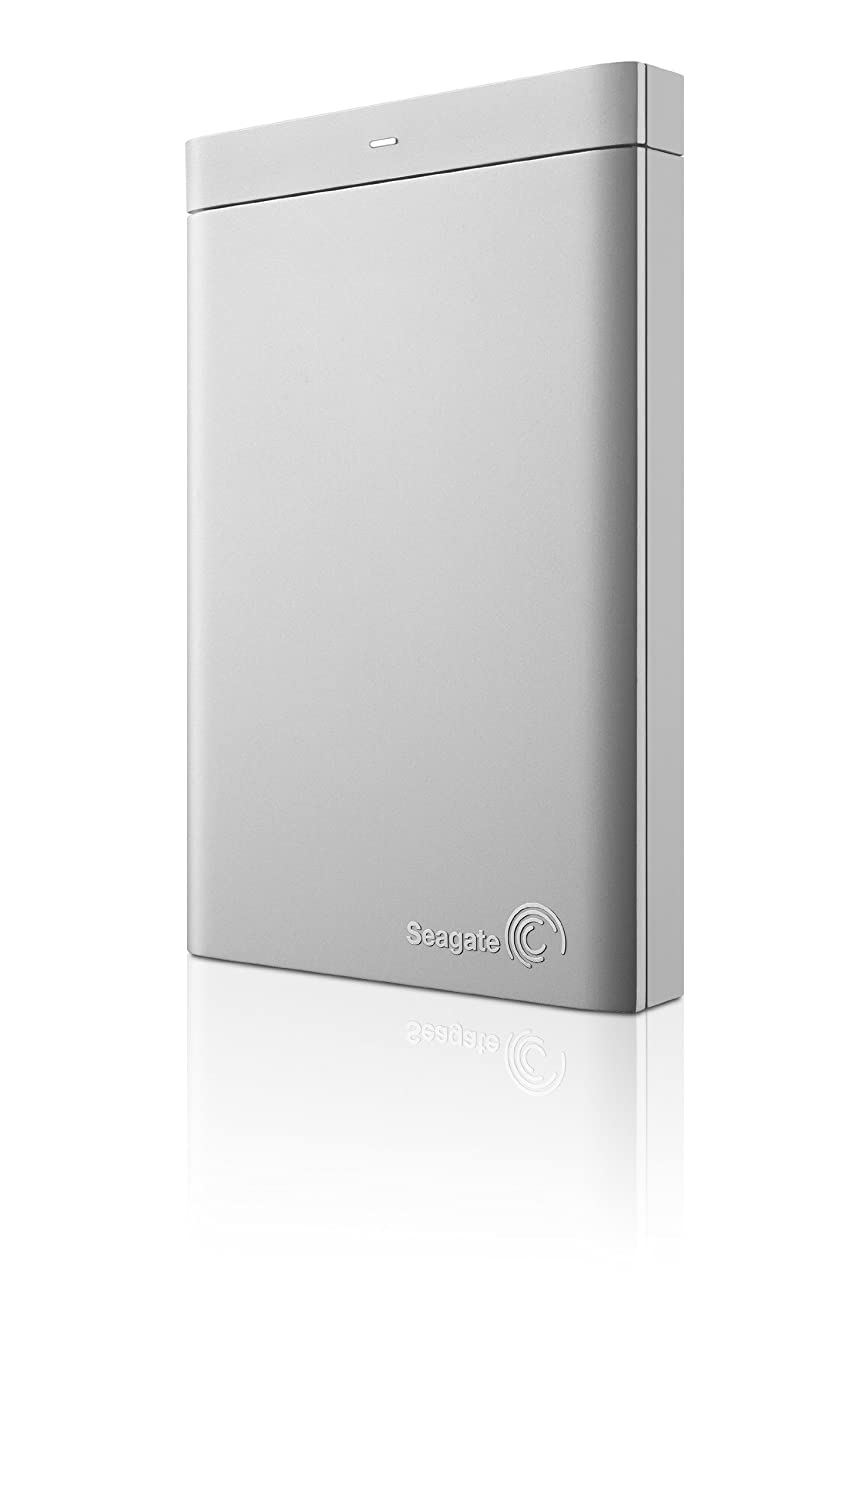 Seagate Backup Plus 1 TB USB 2.0 Portable External Hard Drive for Mac STBW1000100